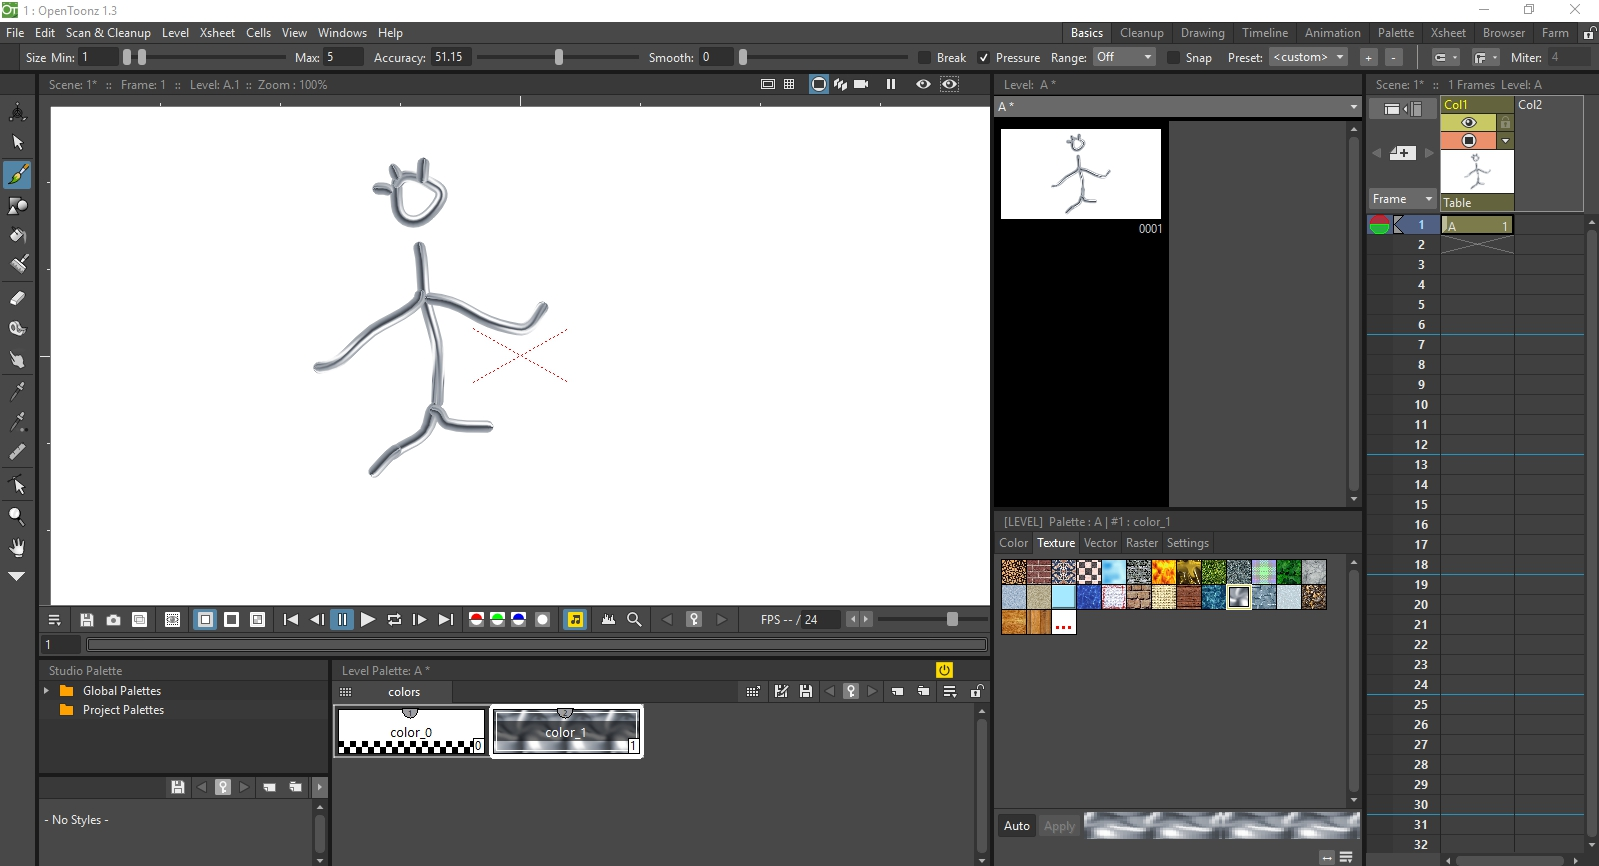 Menu of the free 2D animation software Opentoonz